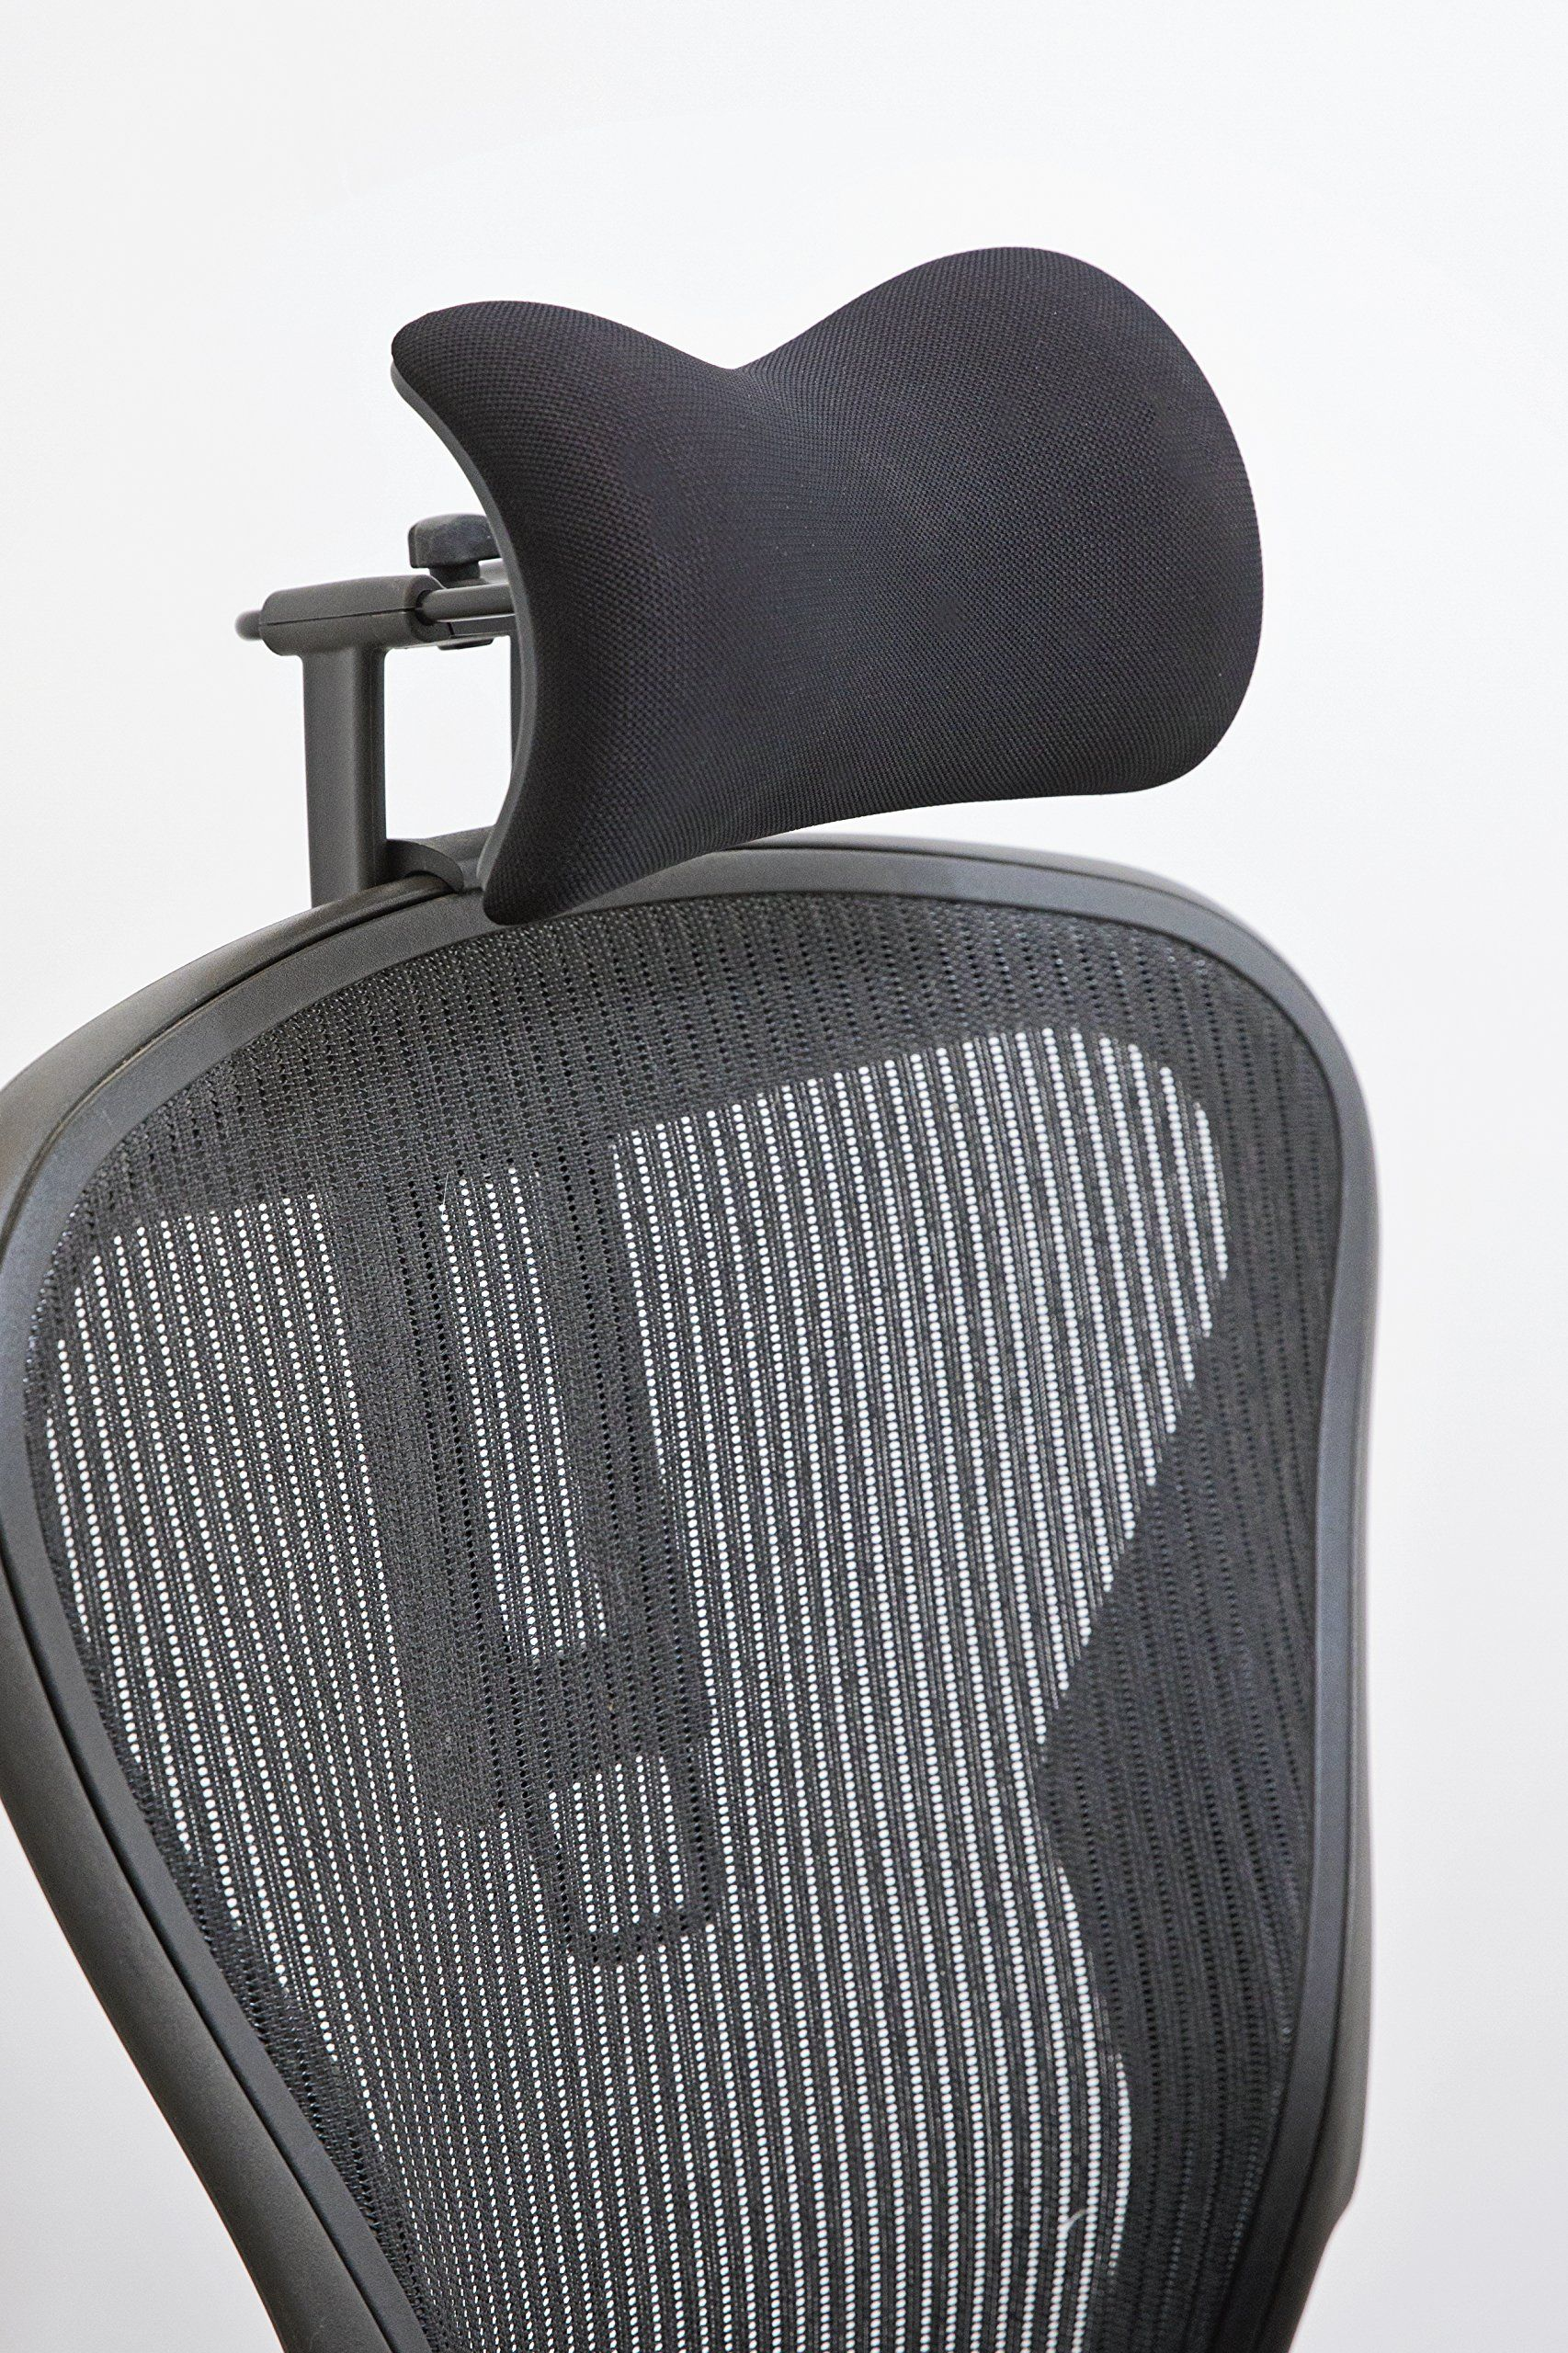 Atlas Headrest Designed For The Herman Miller Aeron Chair Click On The Image For Additional Details This Is An Affiliate Link Cool Chairs Chair Headrest